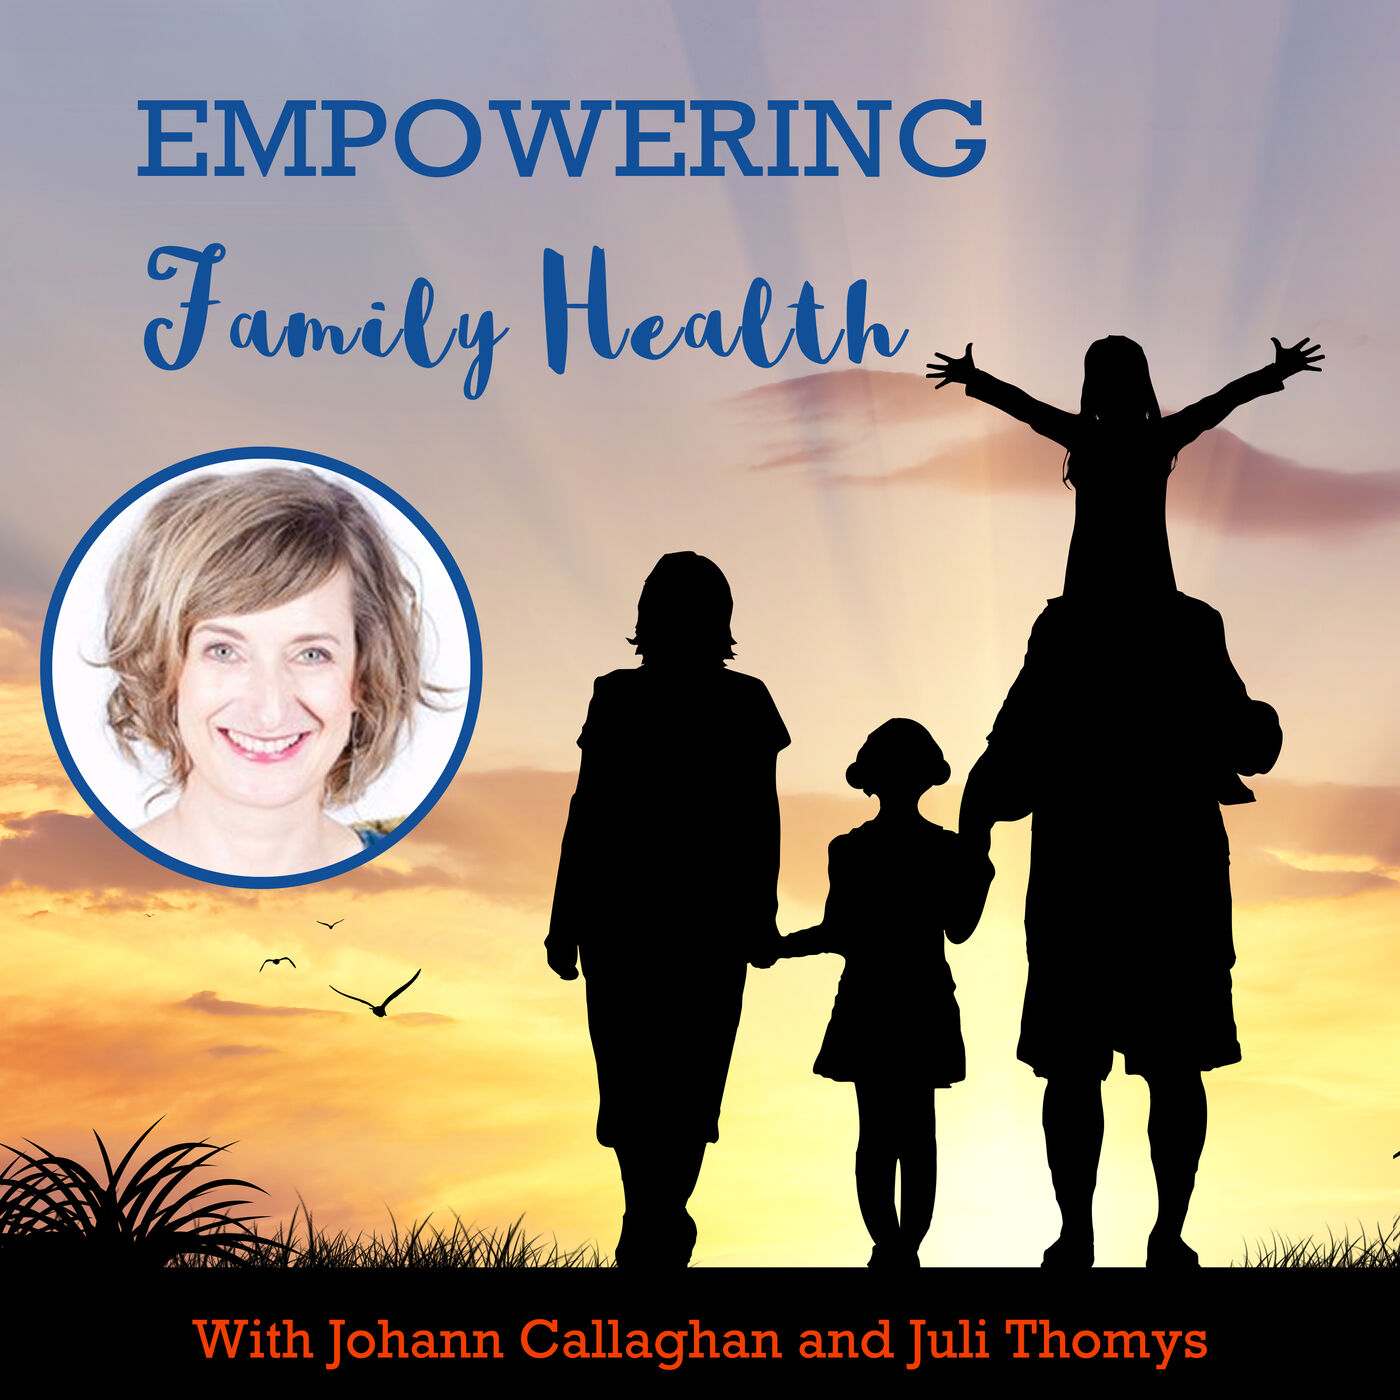 Ep#24 - How Bio Kinesiology Can Improve Wellbeing - Physically, Emotionally and Mentally with Juli Thomys